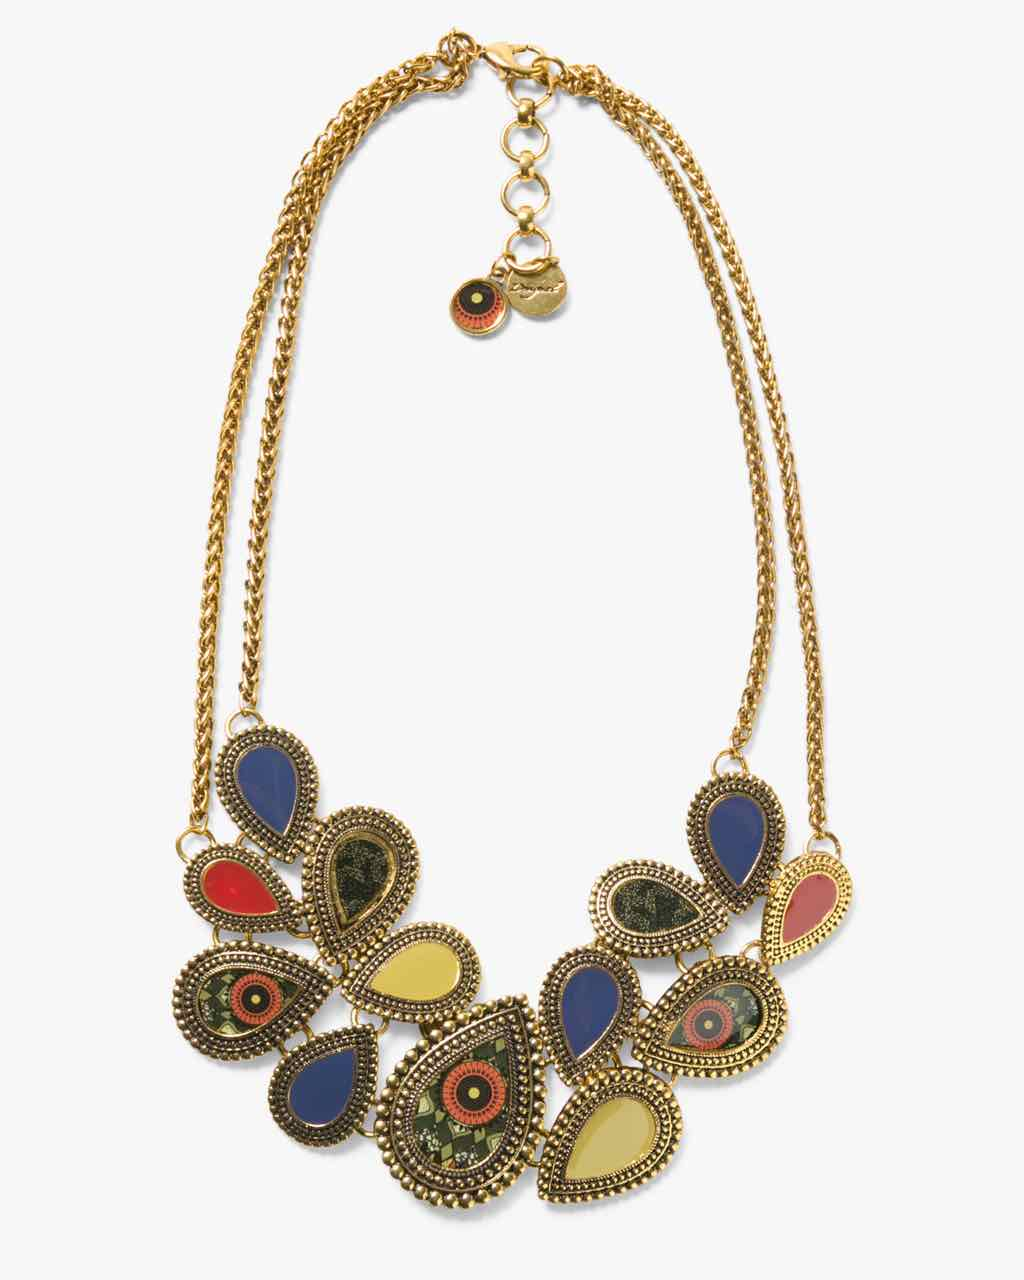 17WAGOH9_4009 Desigual Necklace Camerun Buy Online